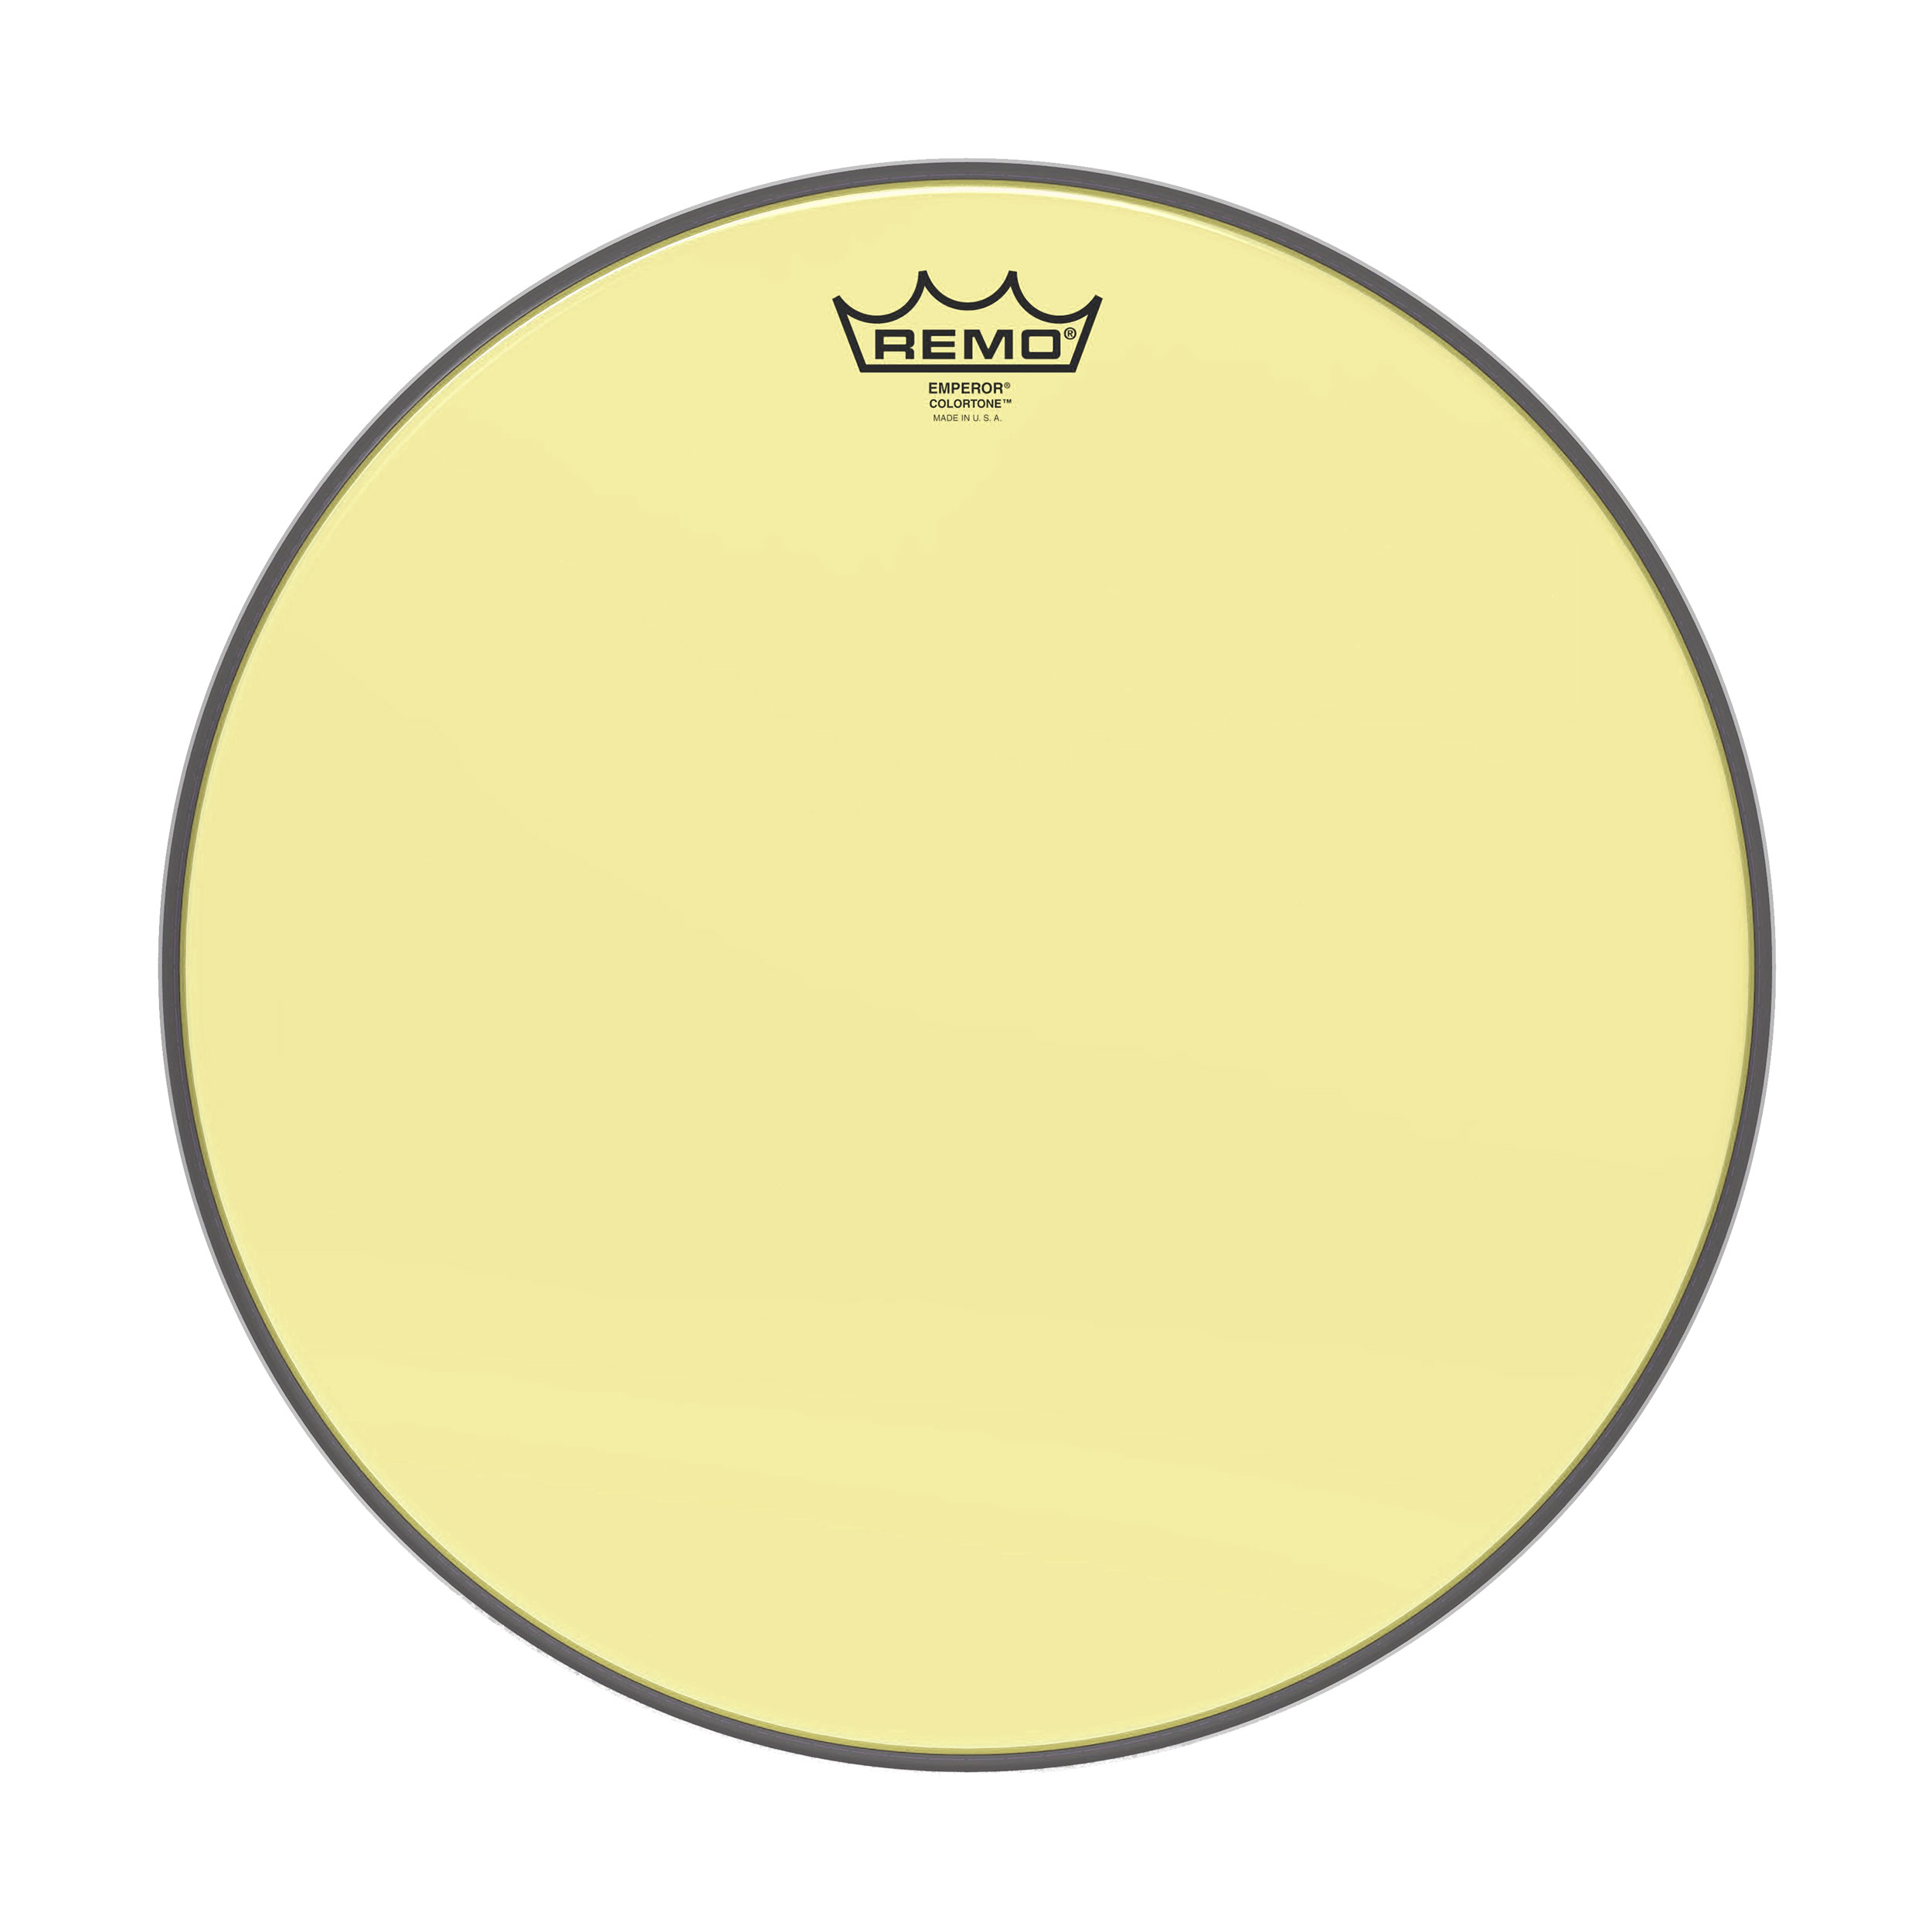 remo 15 emperor colortone yellow drum head be 0315 ct ye. Black Bedroom Furniture Sets. Home Design Ideas